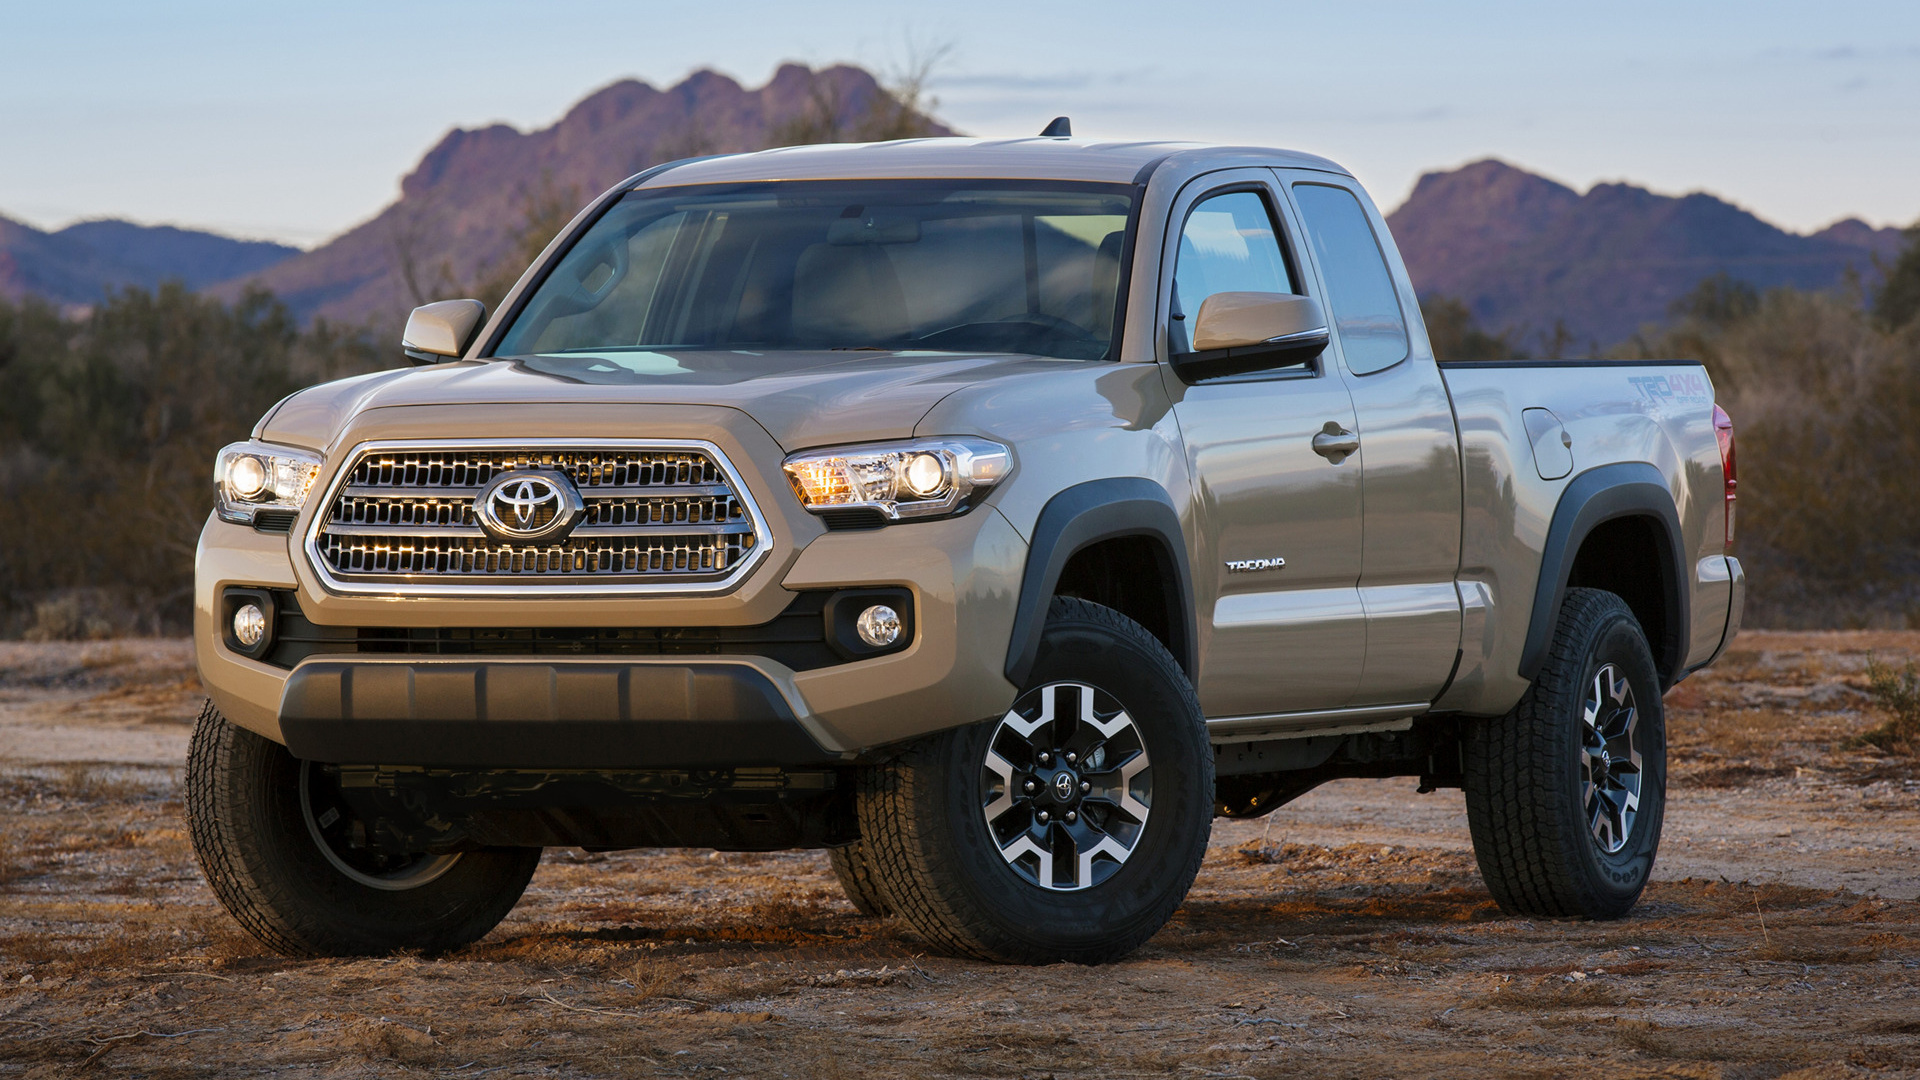 2016 Toyota Tacoma Access Cab >> 2016 Toyota Tacoma TRD Off-Road Access Cab - Wallpapers and HD Images | Car Pixel